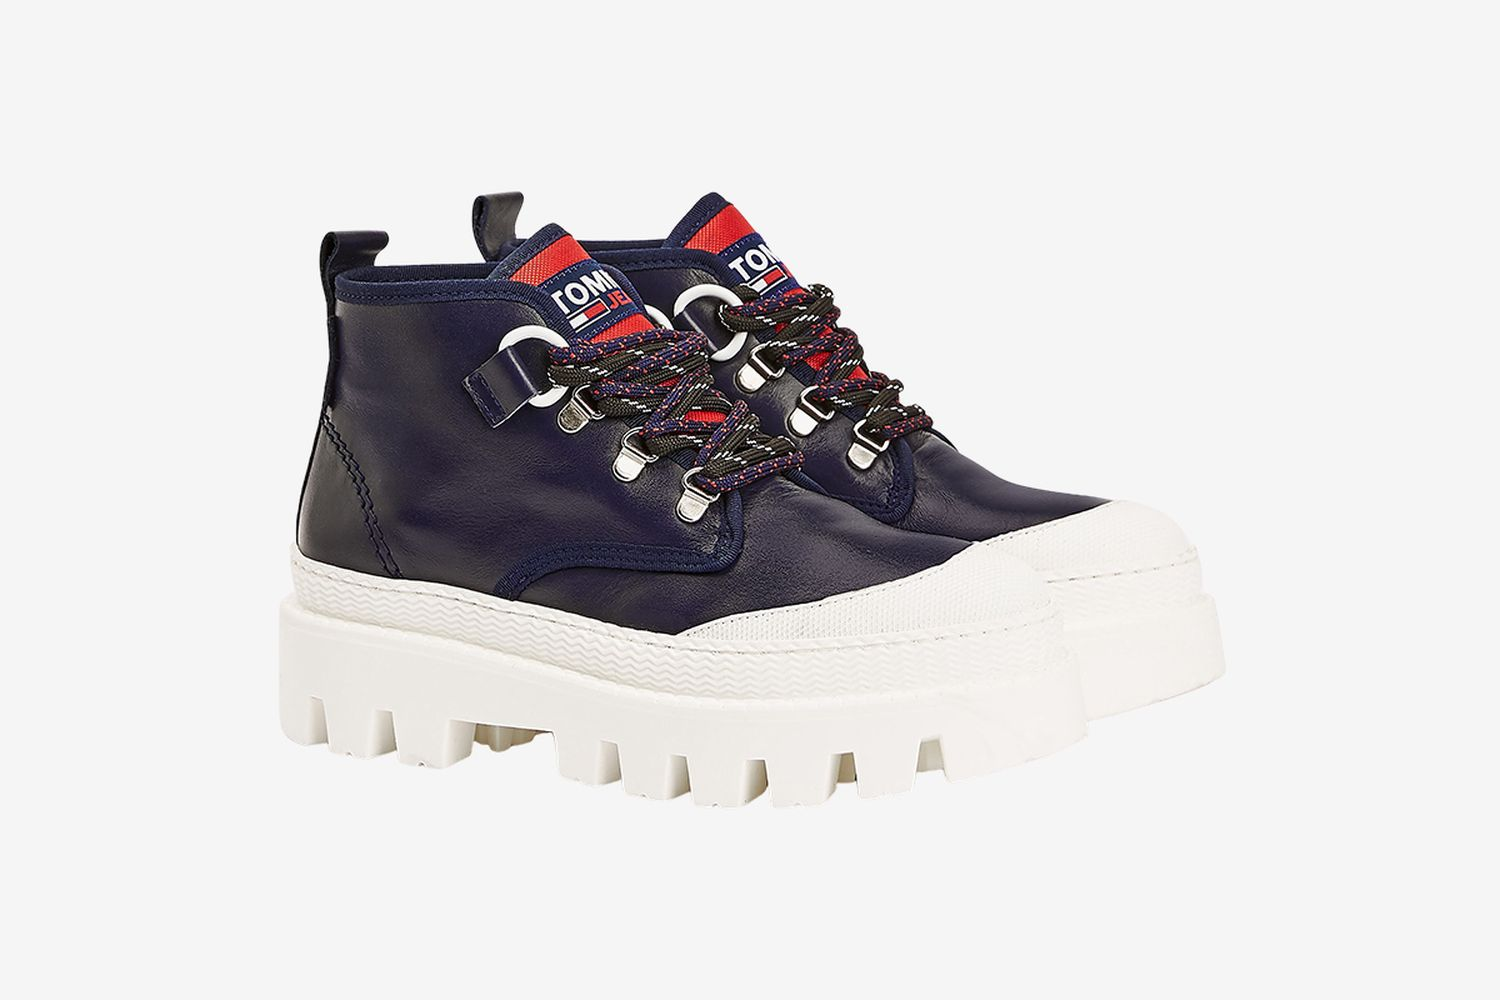 Women's Double Detail Cleated Boots